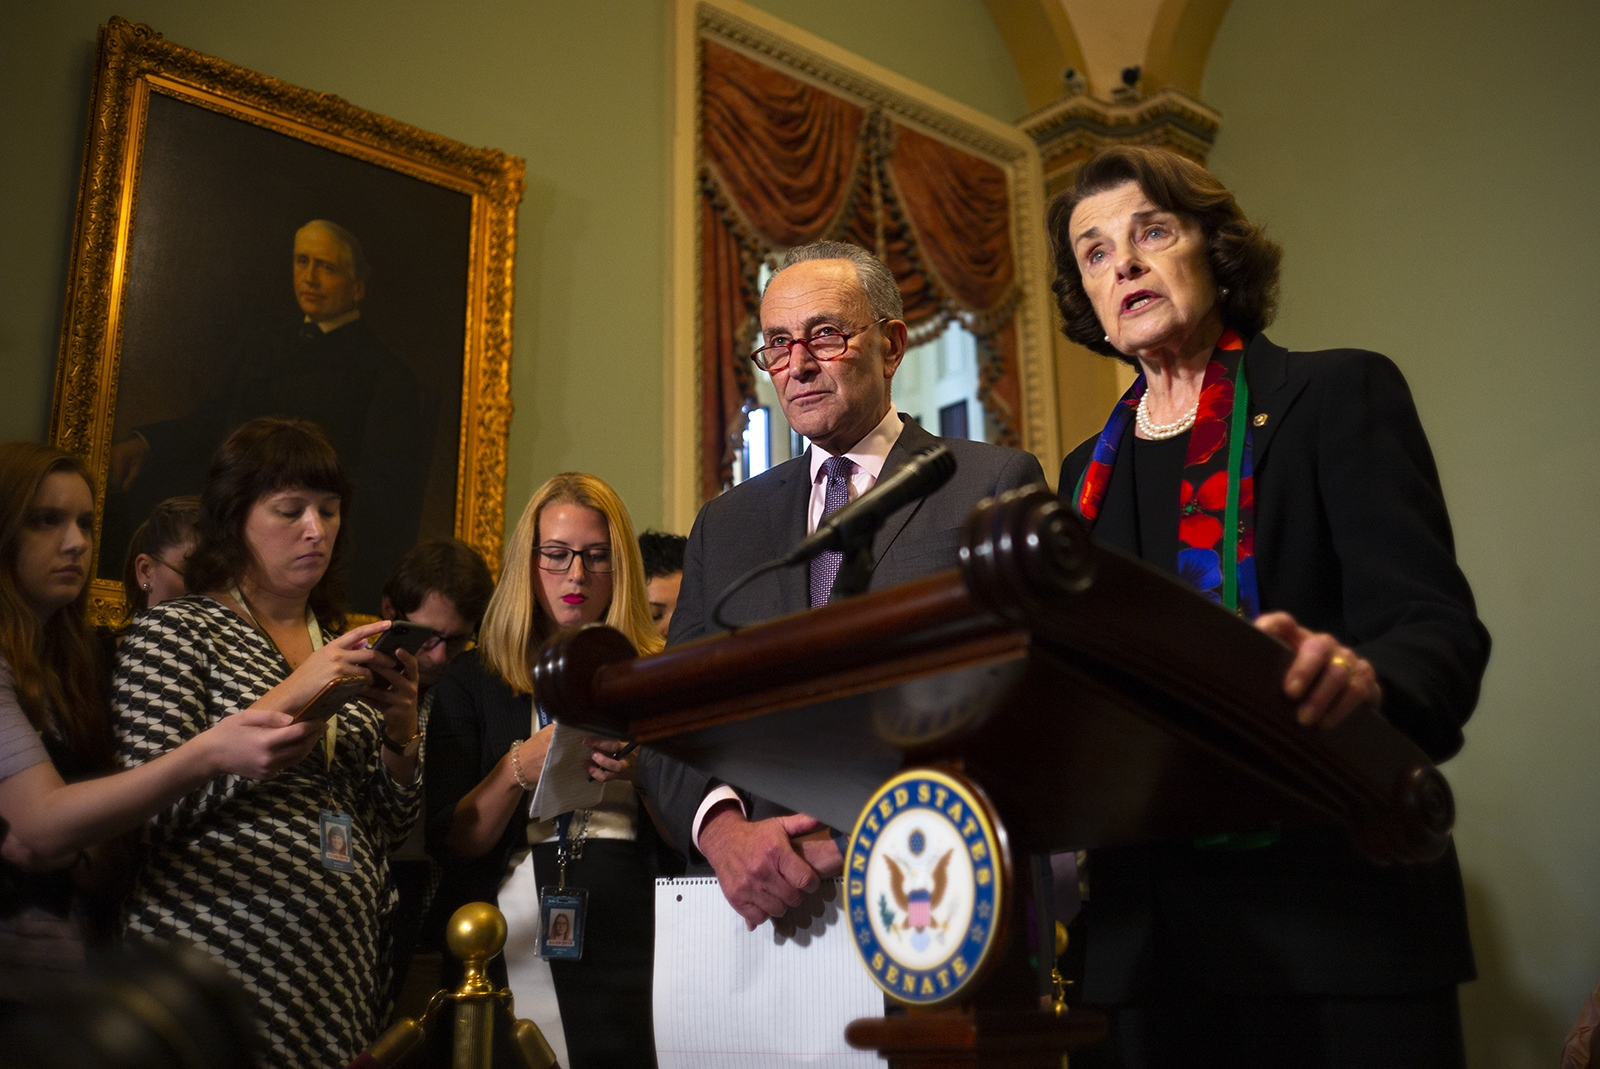 Senators Dianne Feinstein and Chuck Schumer make a brief statement after the confidential supplemental background check was released to senators.